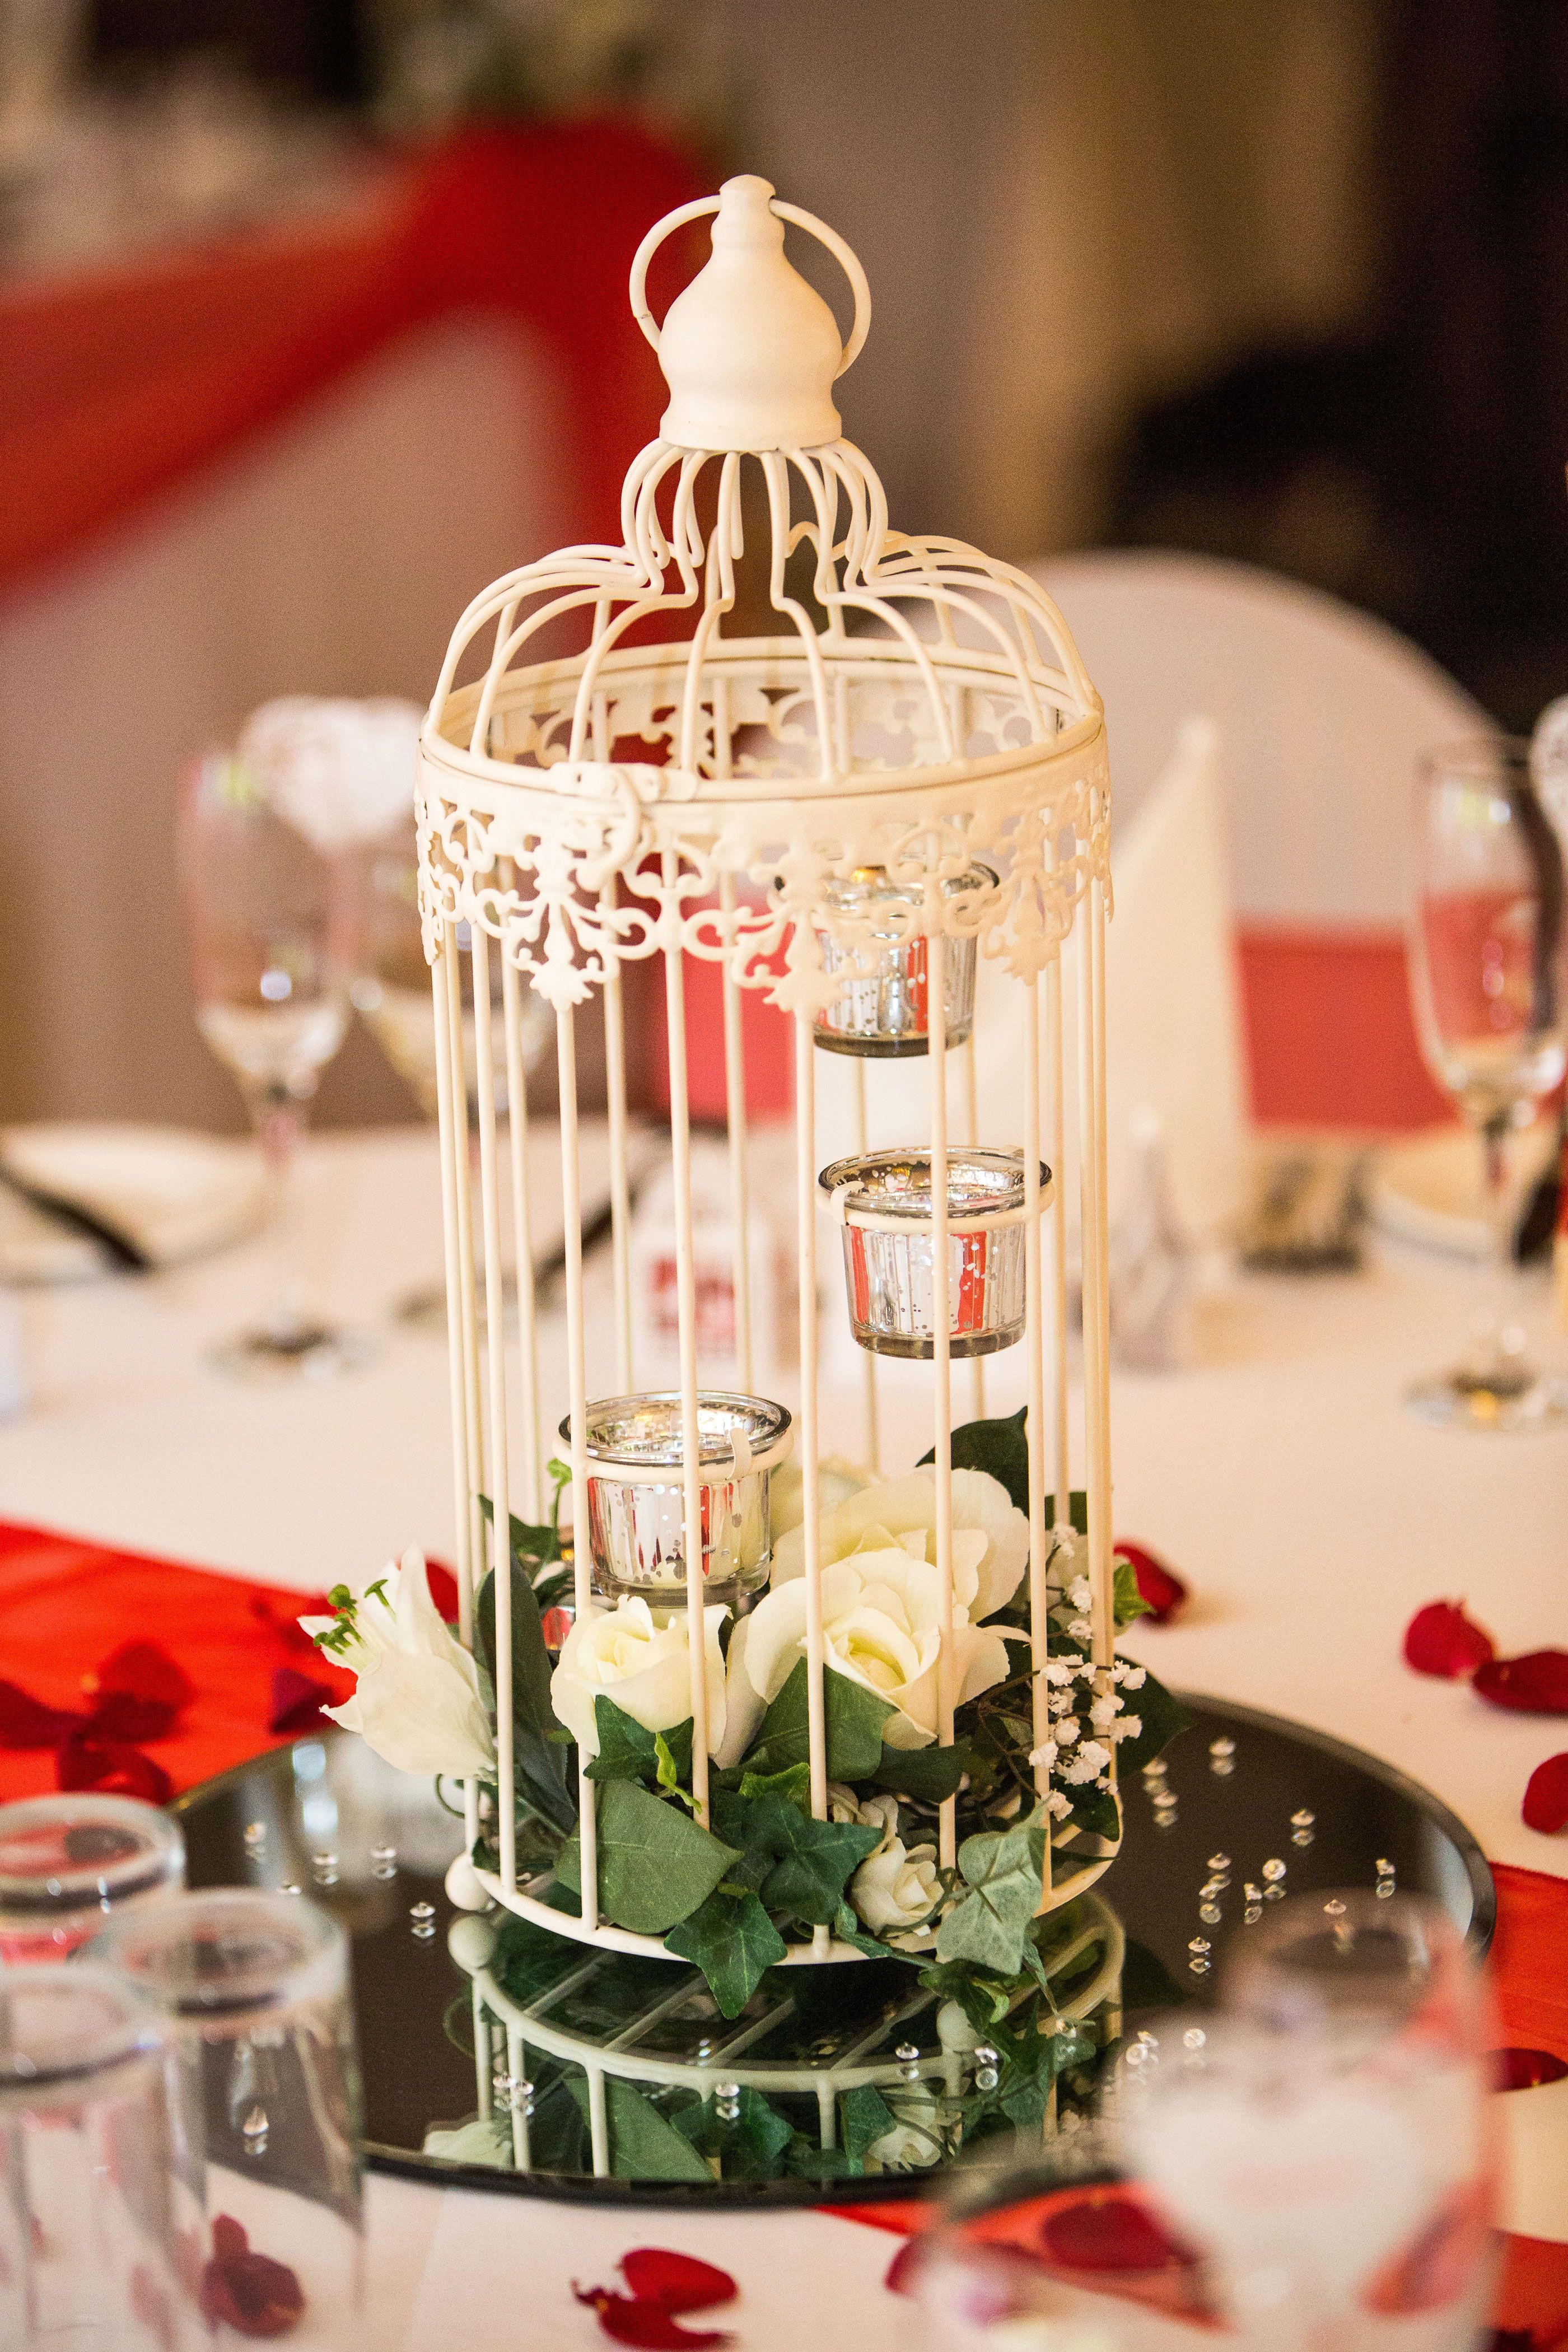 Little Details At The Wedding Reception In Our Self Contained Rhydding Suite Venue